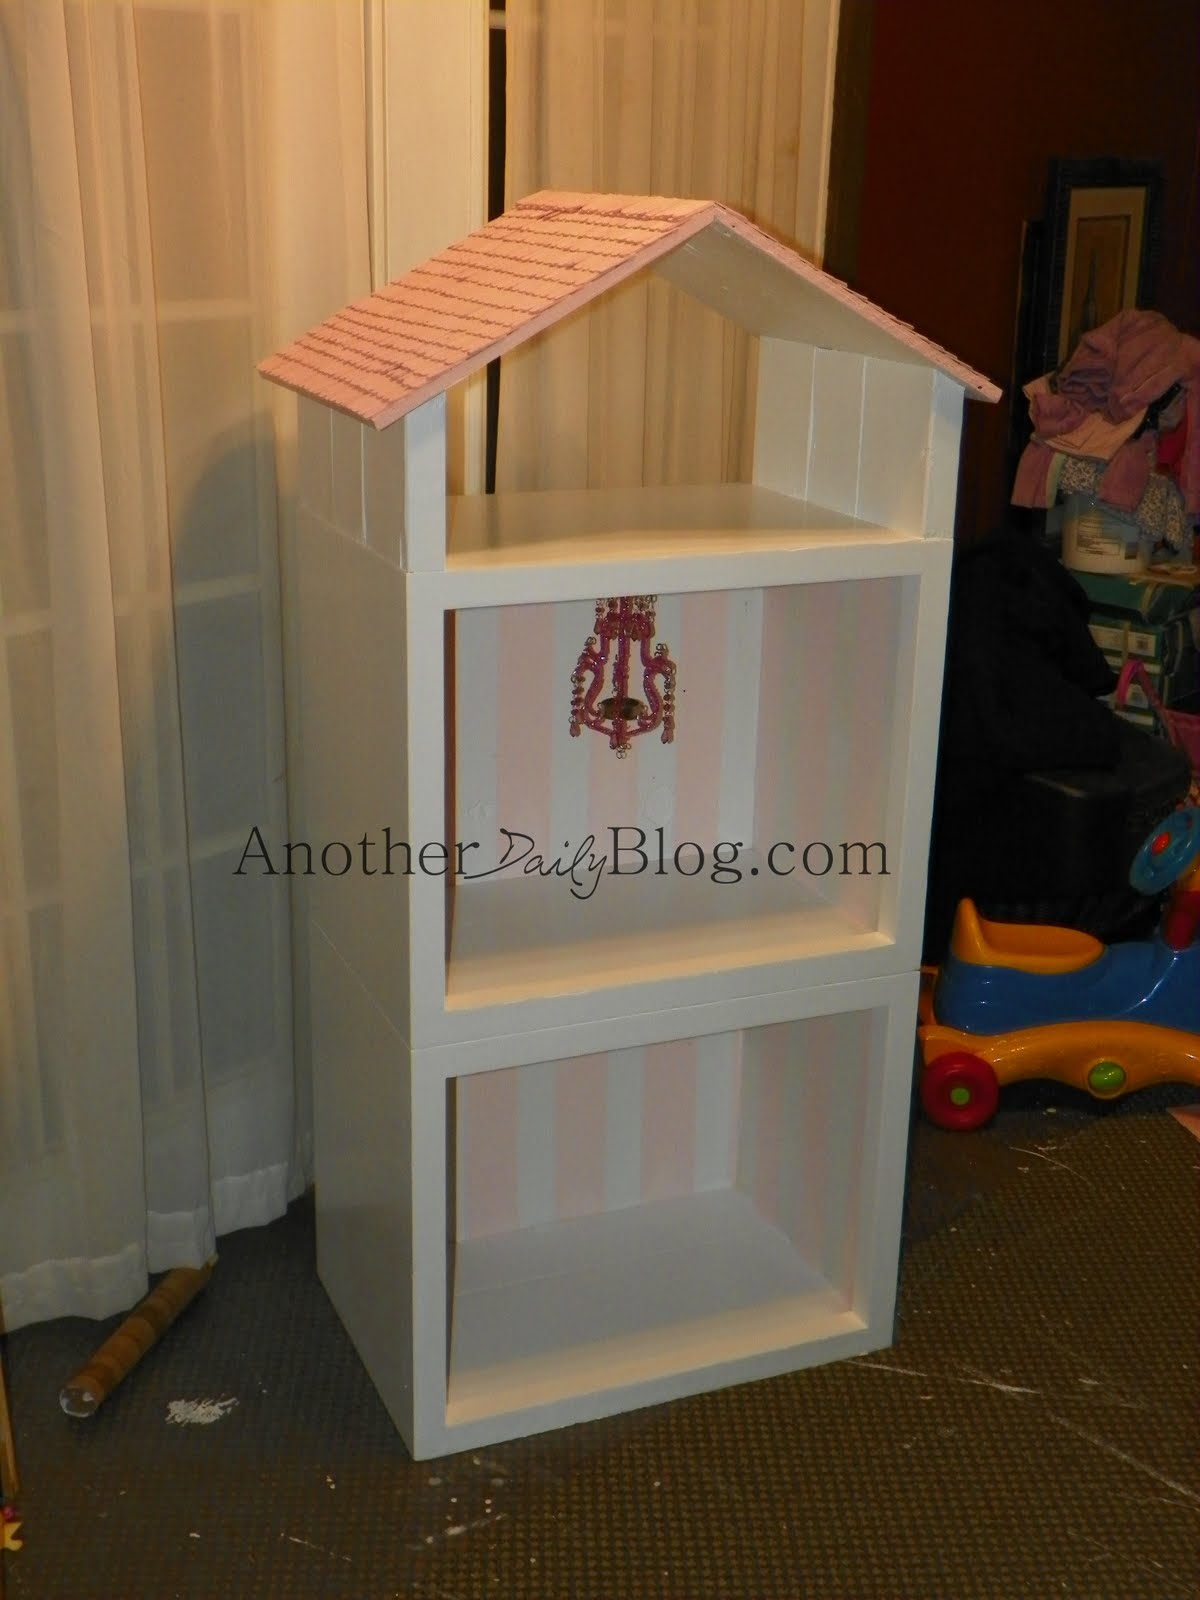 Another Daily Blog Homemade Barbie House out of Re purposed 70s